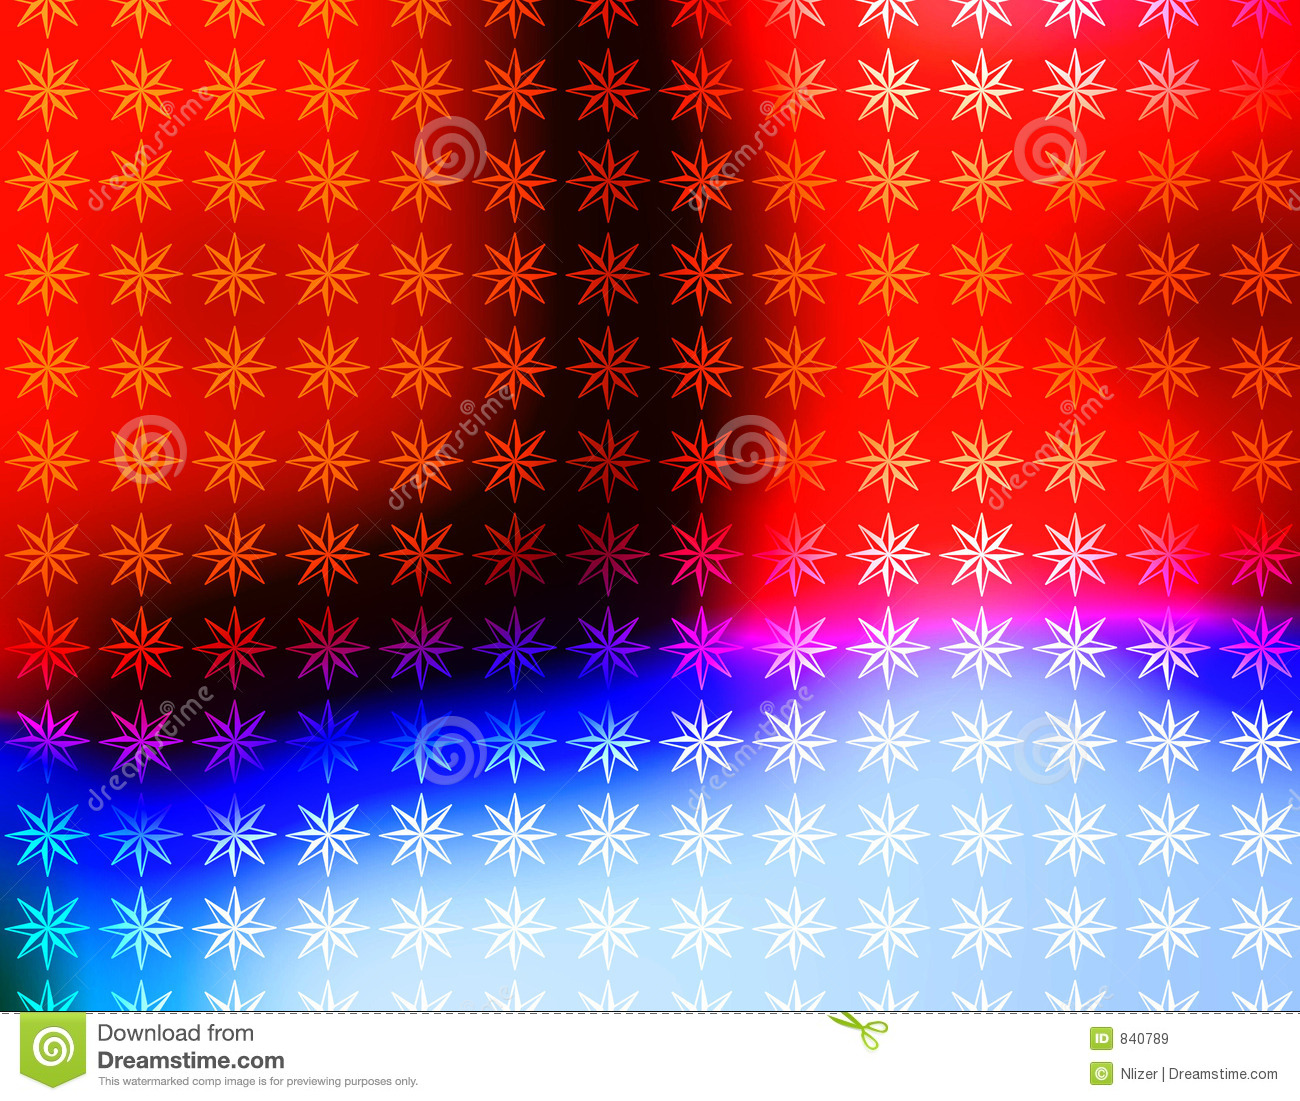 vivid red white and blue stars wallpaper stock illustration